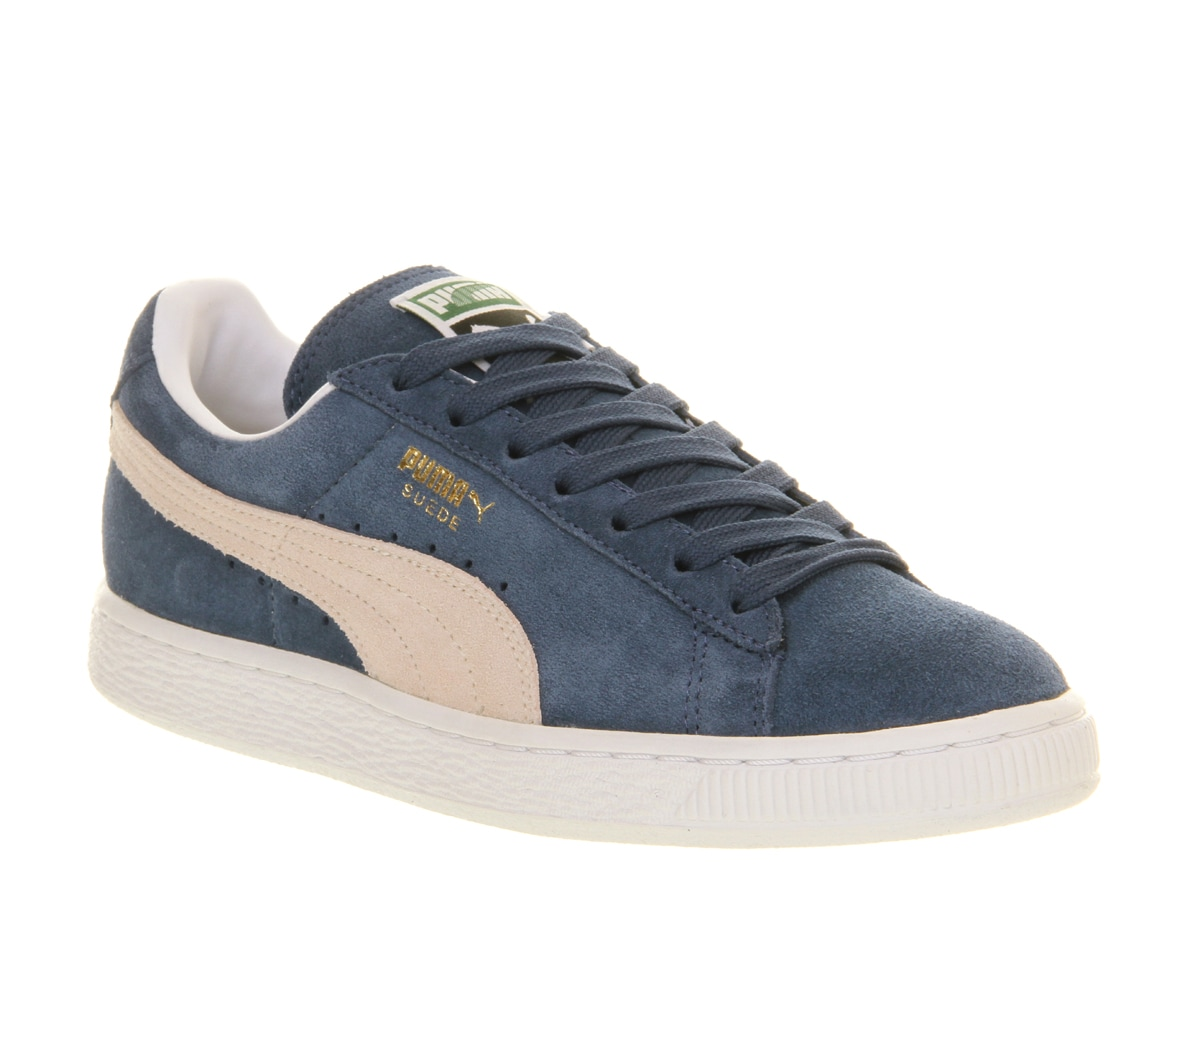 puma suede grey blue red